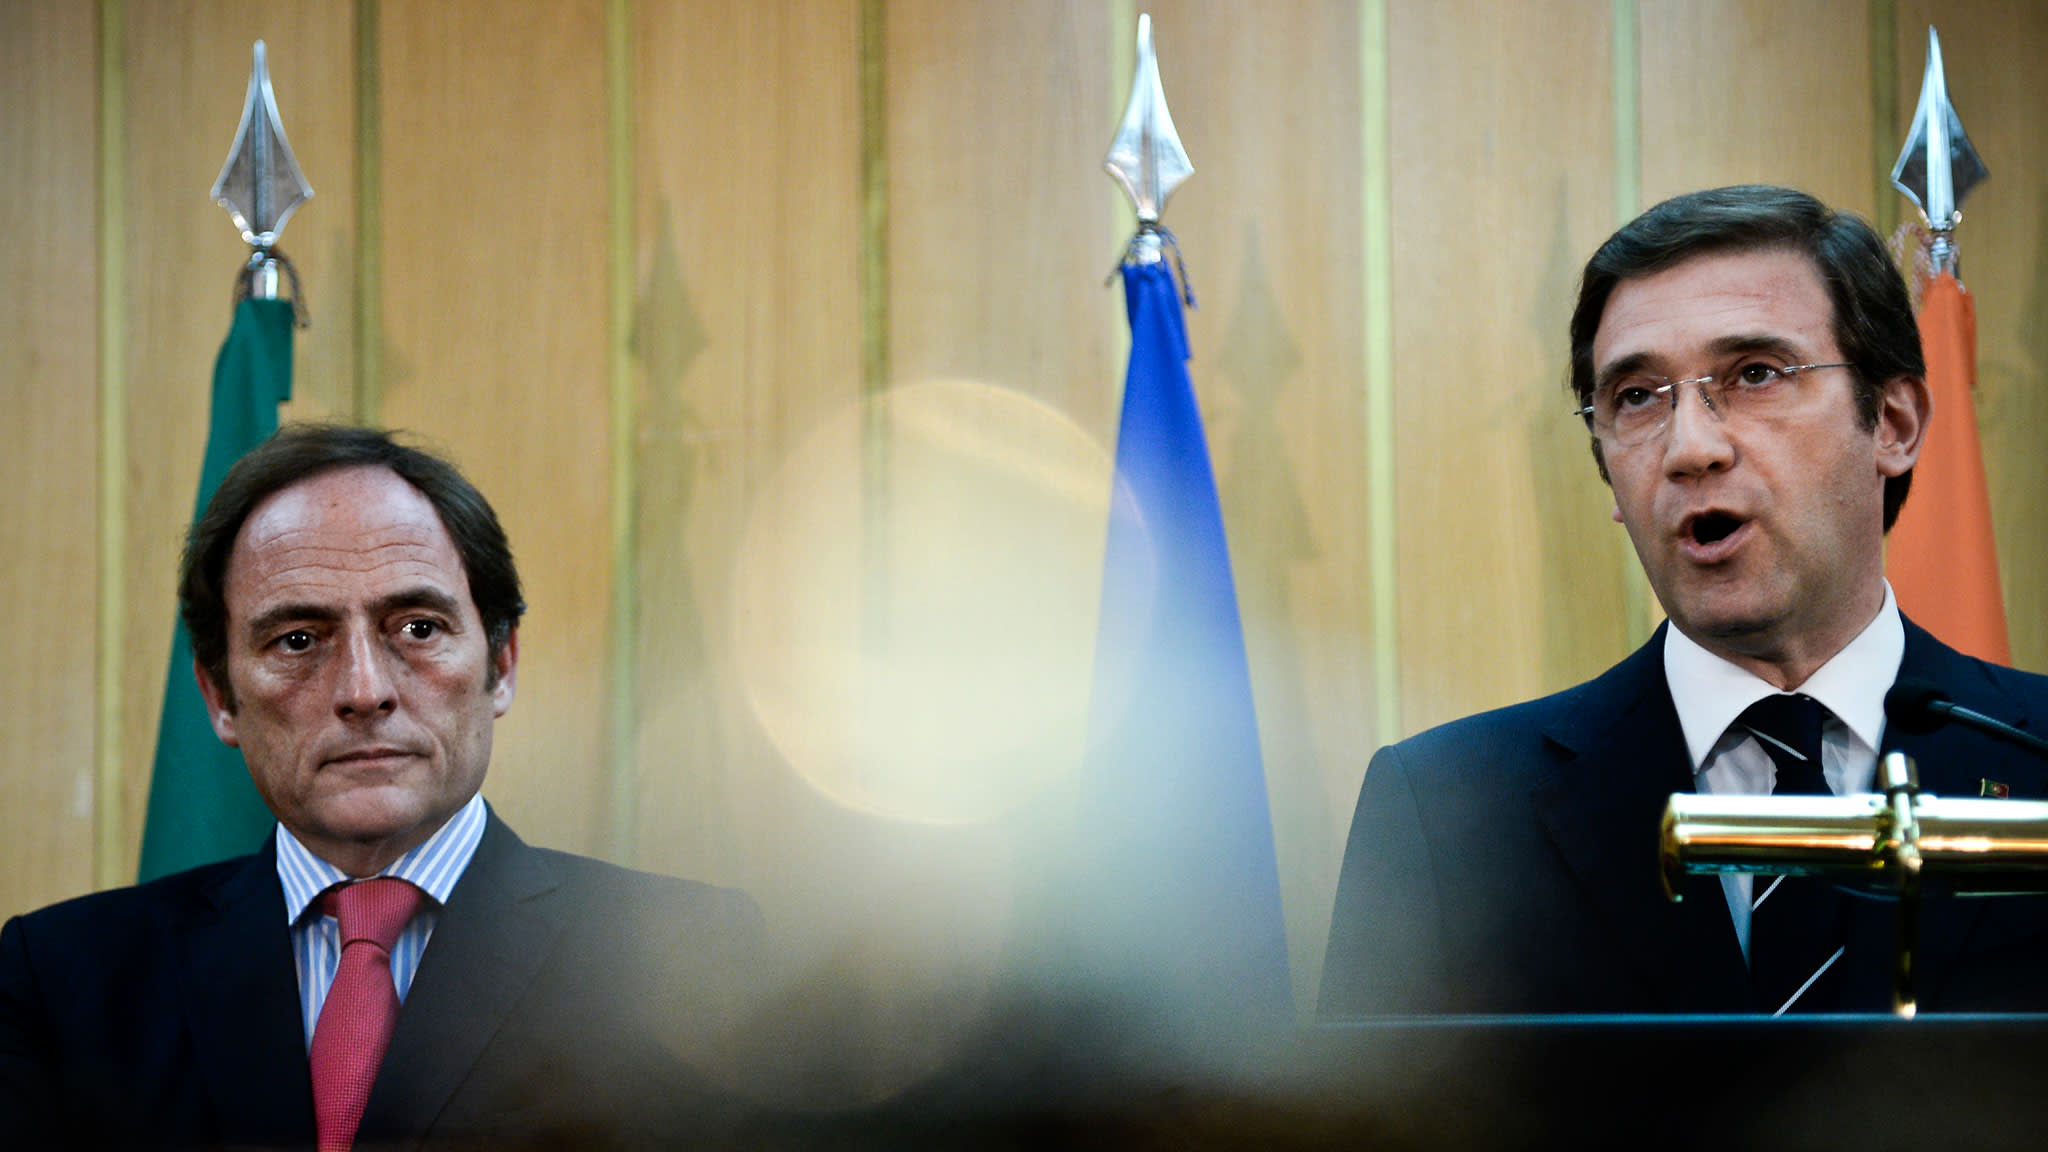 Portugal PM promotes coalition partner to heal divisions | Financial Times